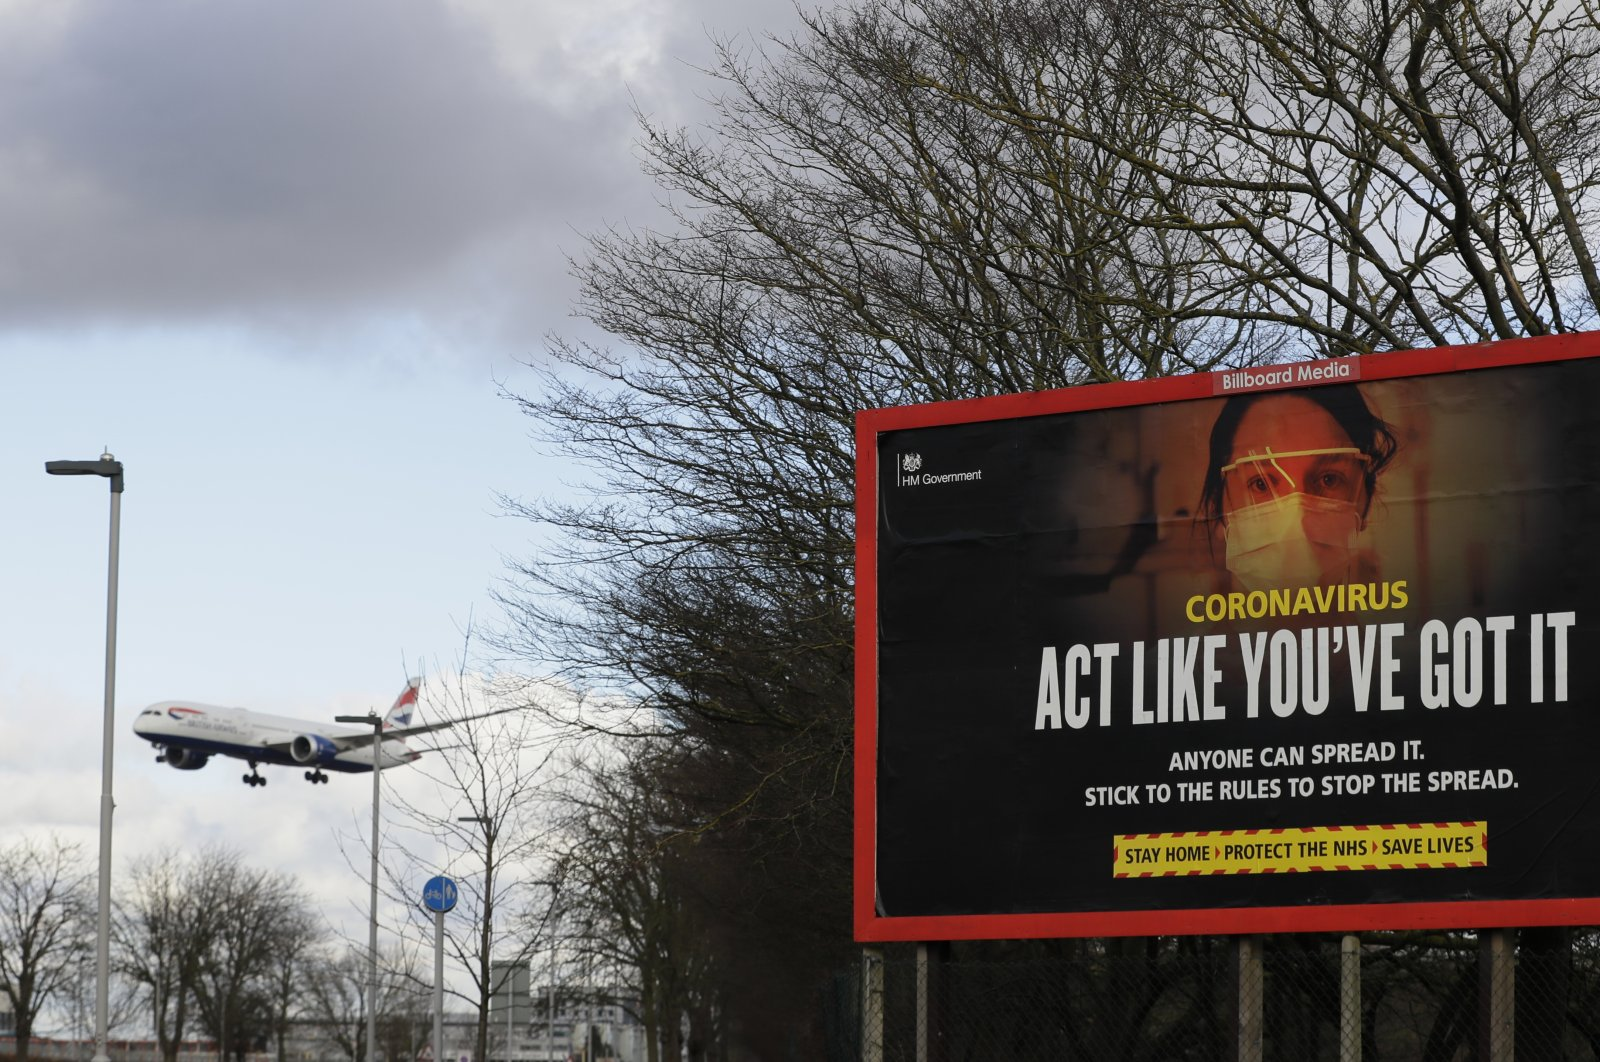 A plane comes in to land near a government coronavirus information sign at Heathrow Airport in London, the U.K., Feb. 5, 2021. (AP Photo)